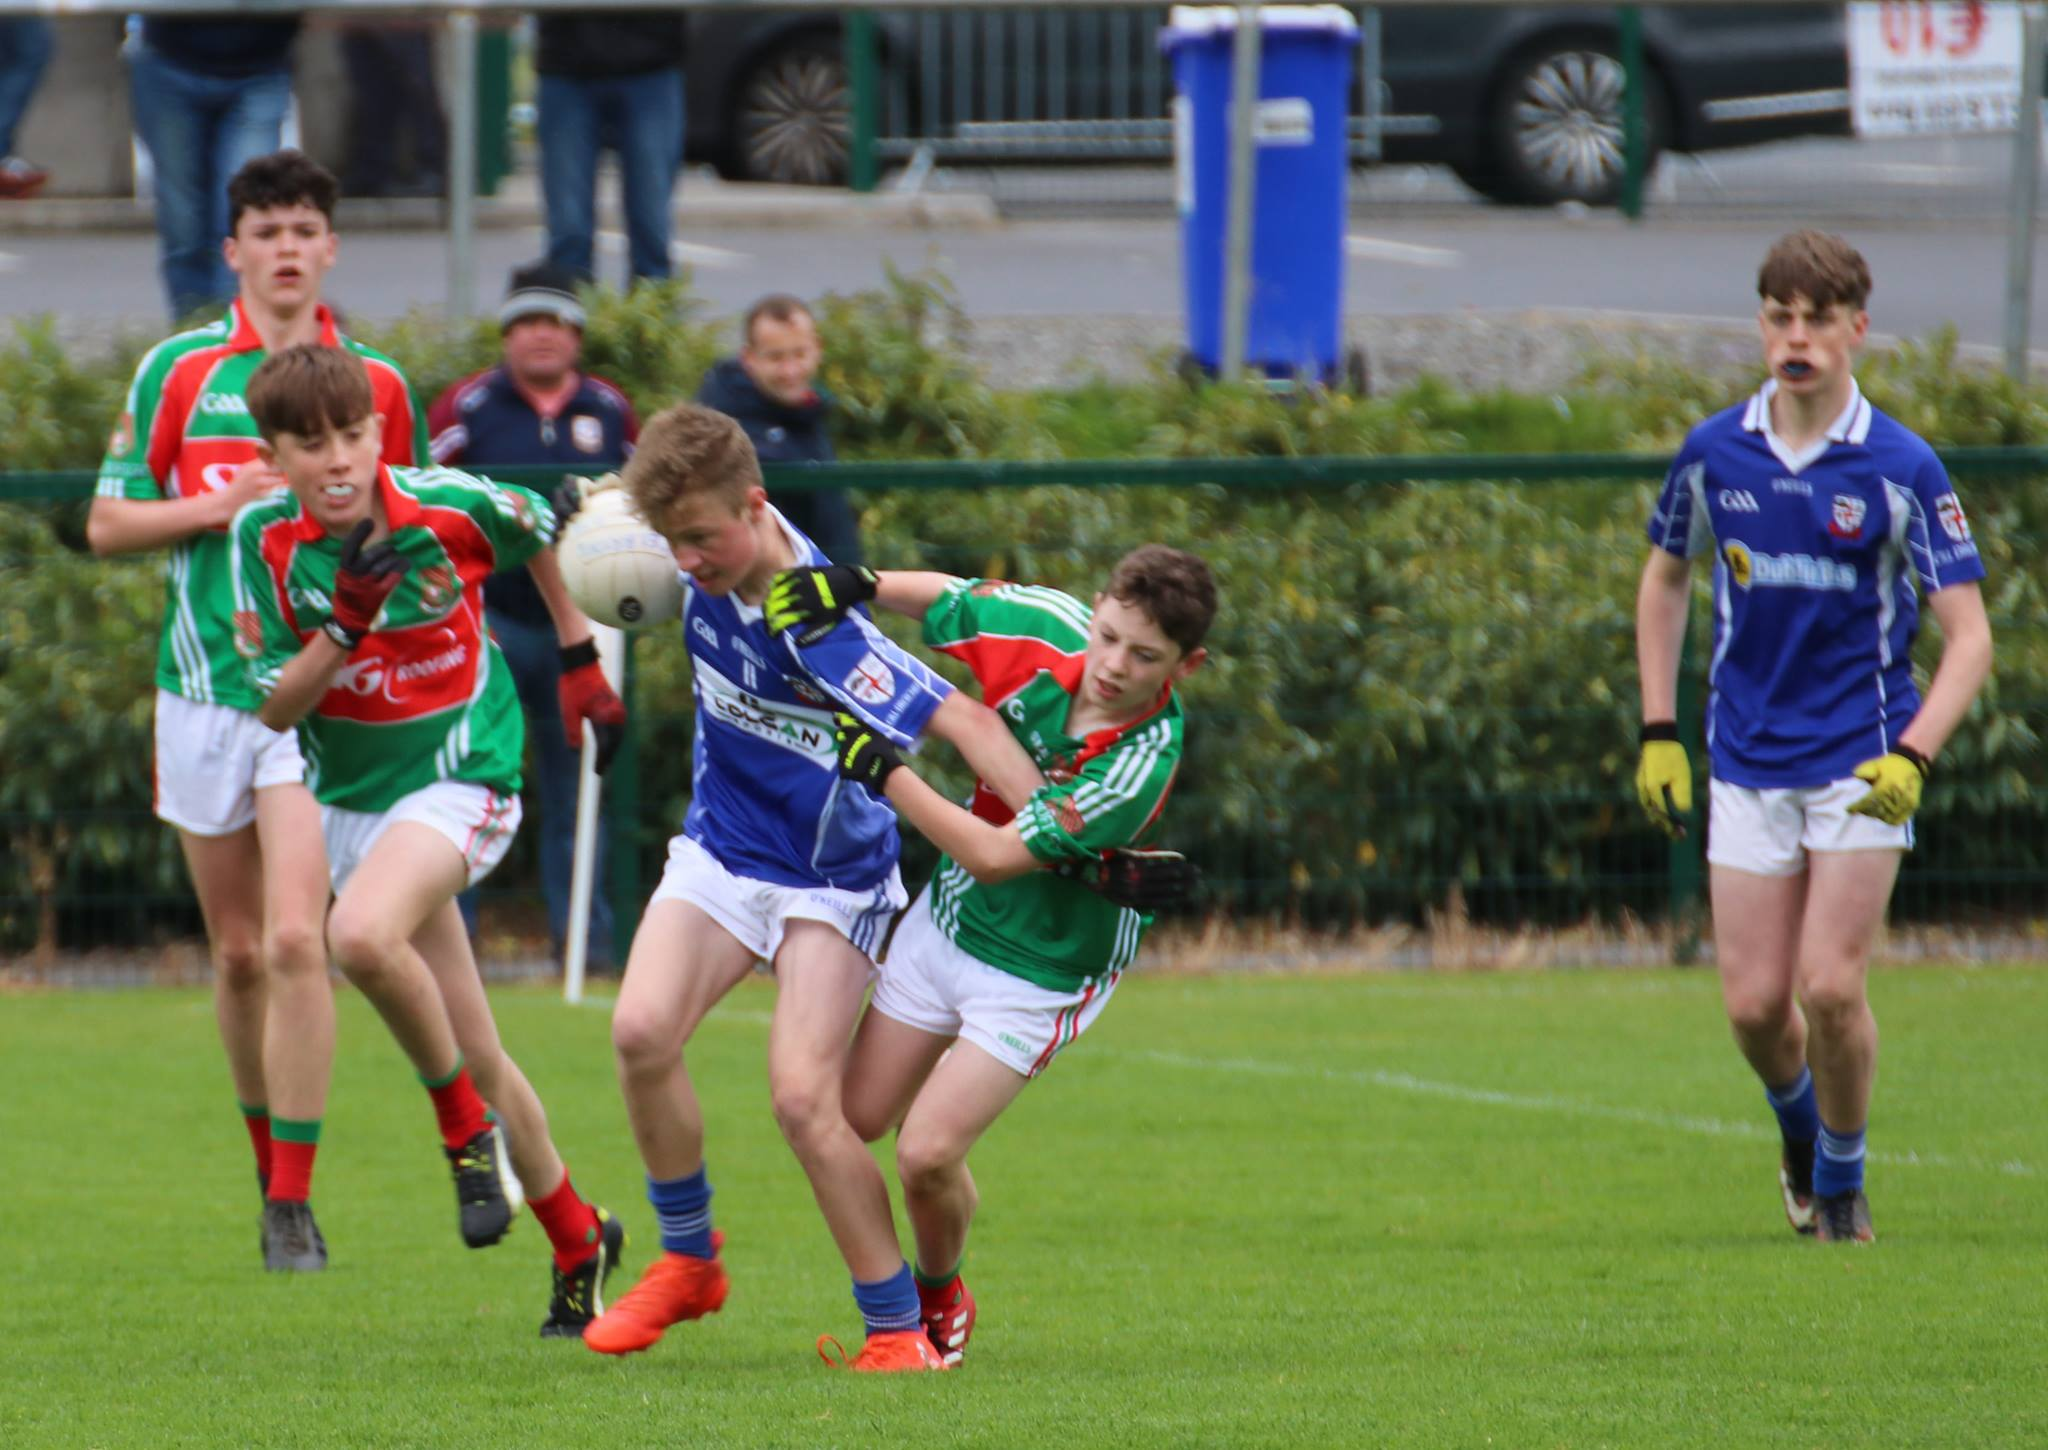 Suncroft v Celbridge Feile A Shield 26